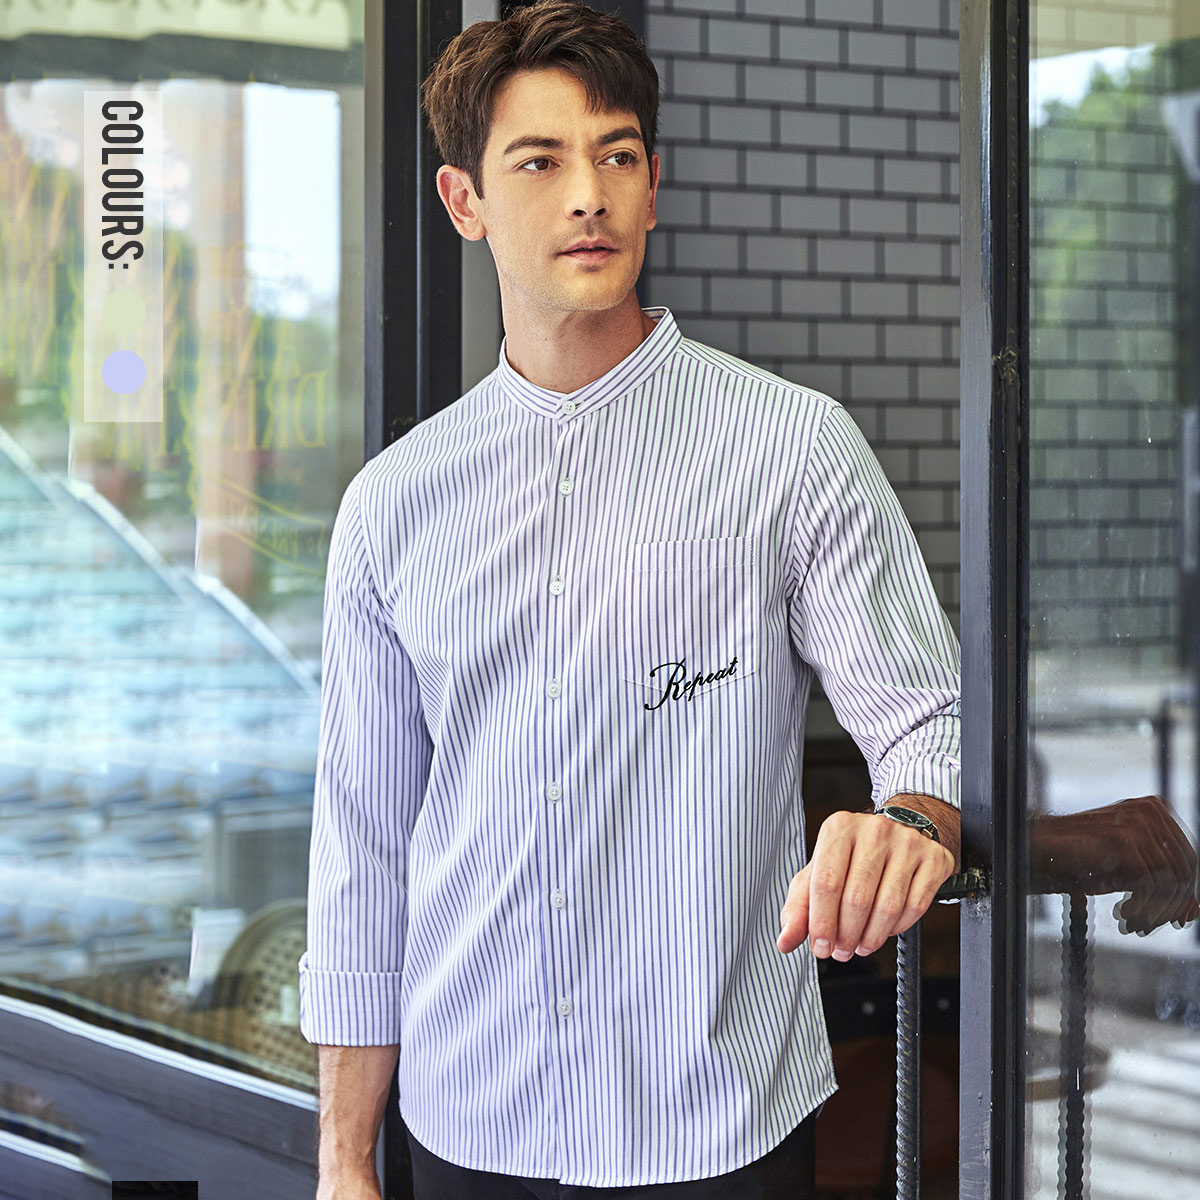 Le engraving stripe long sleeve shirt spring 2020 new fashion embroidery loose comfortable casual low collar shirt